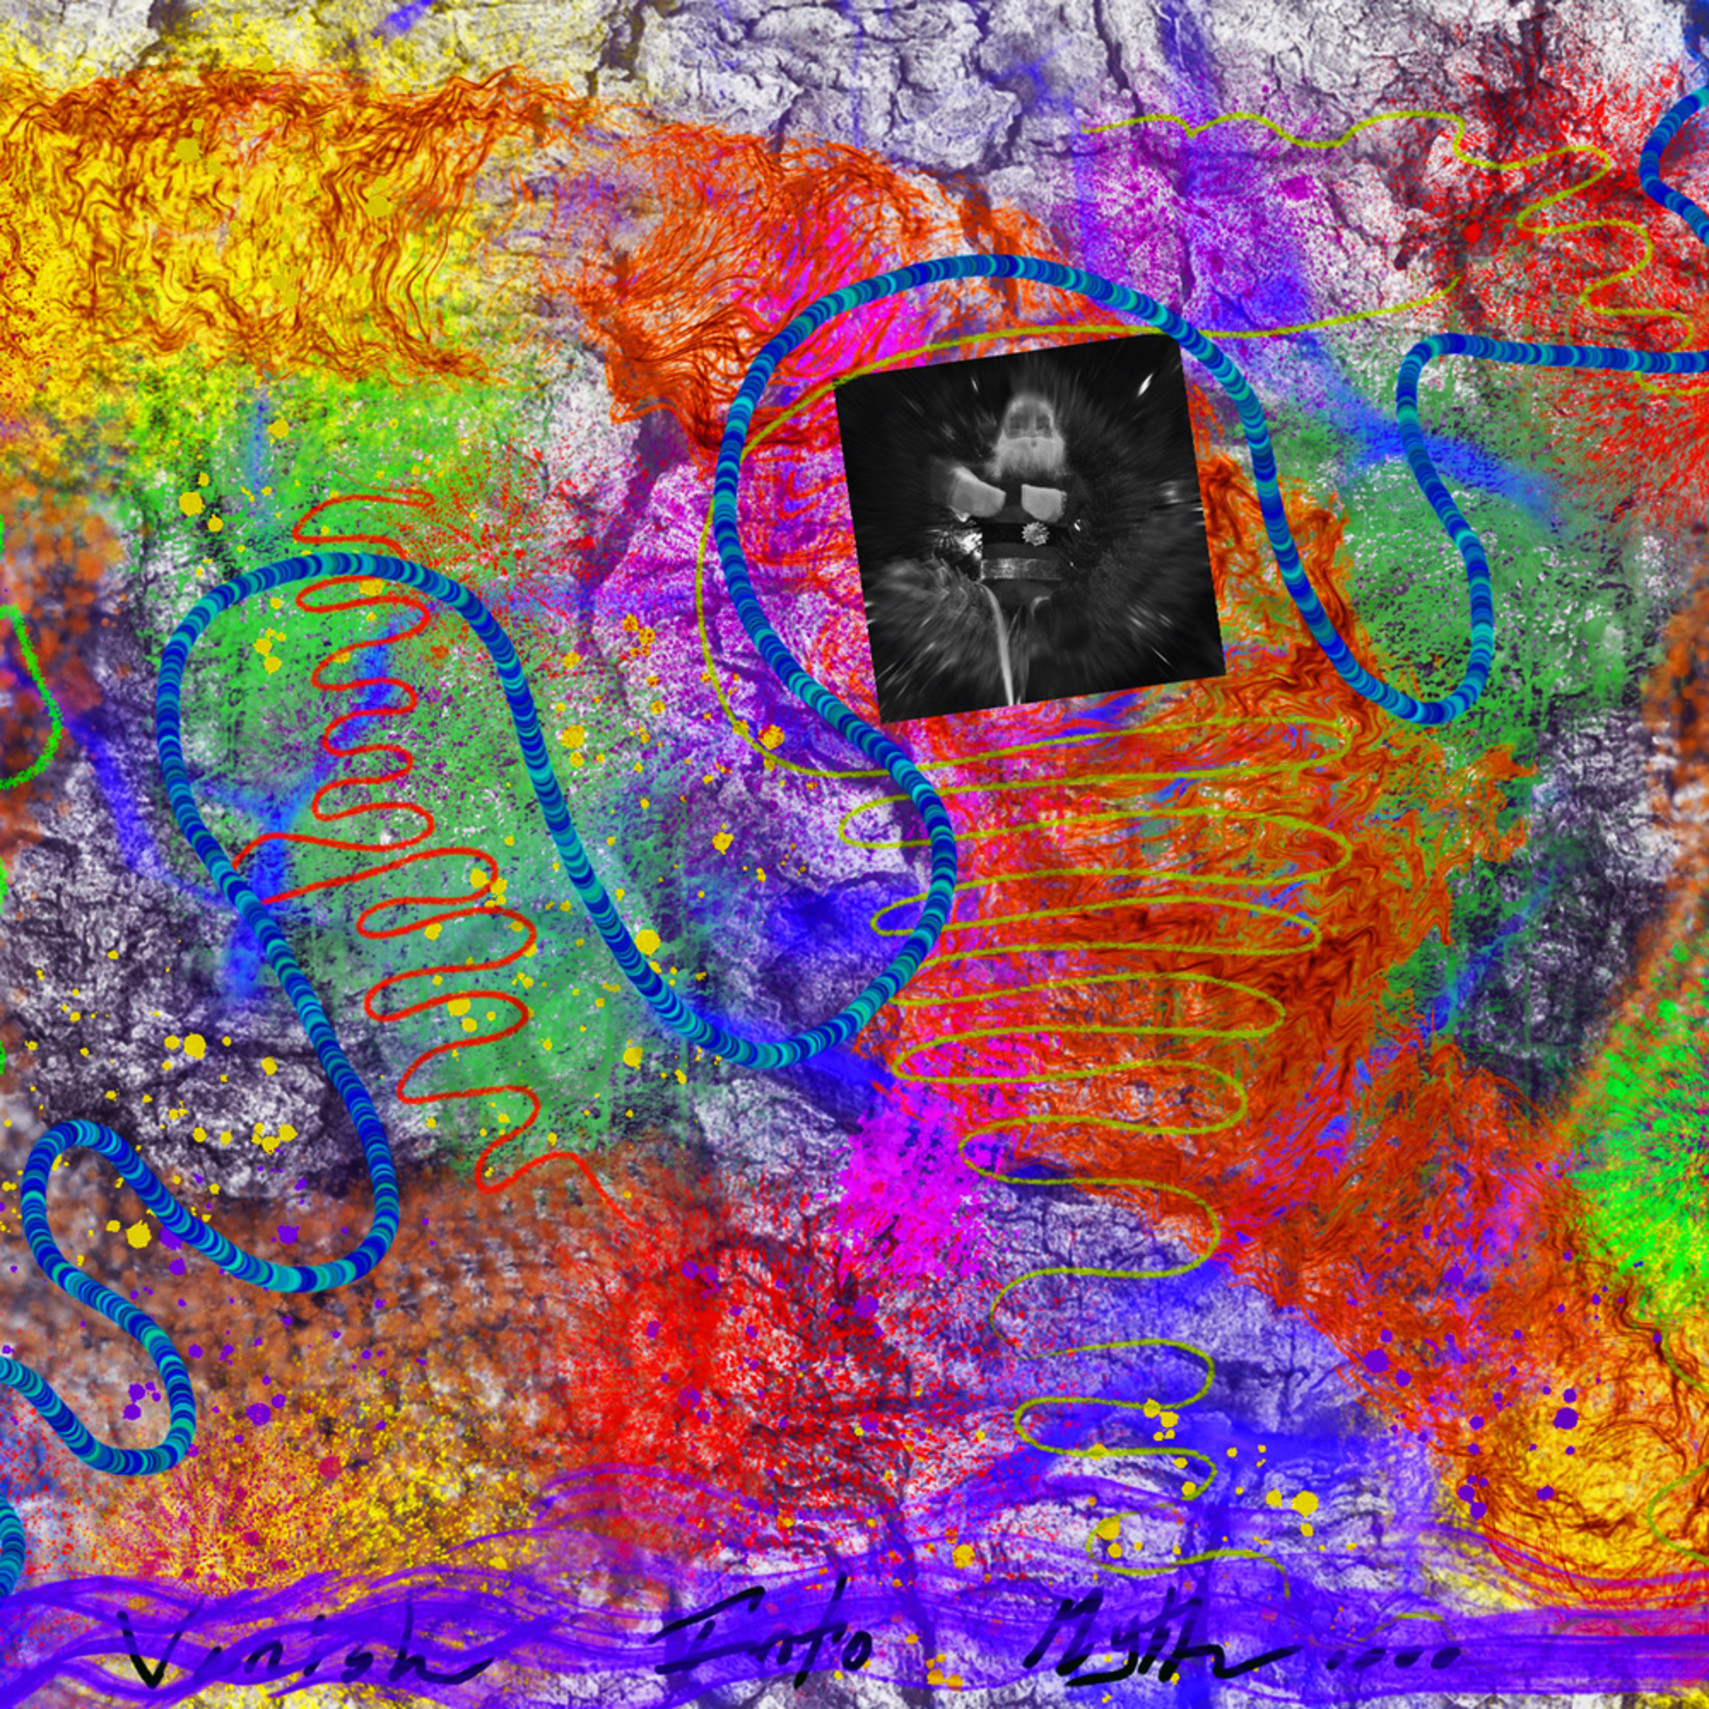 Decay on the vine website ojll3d